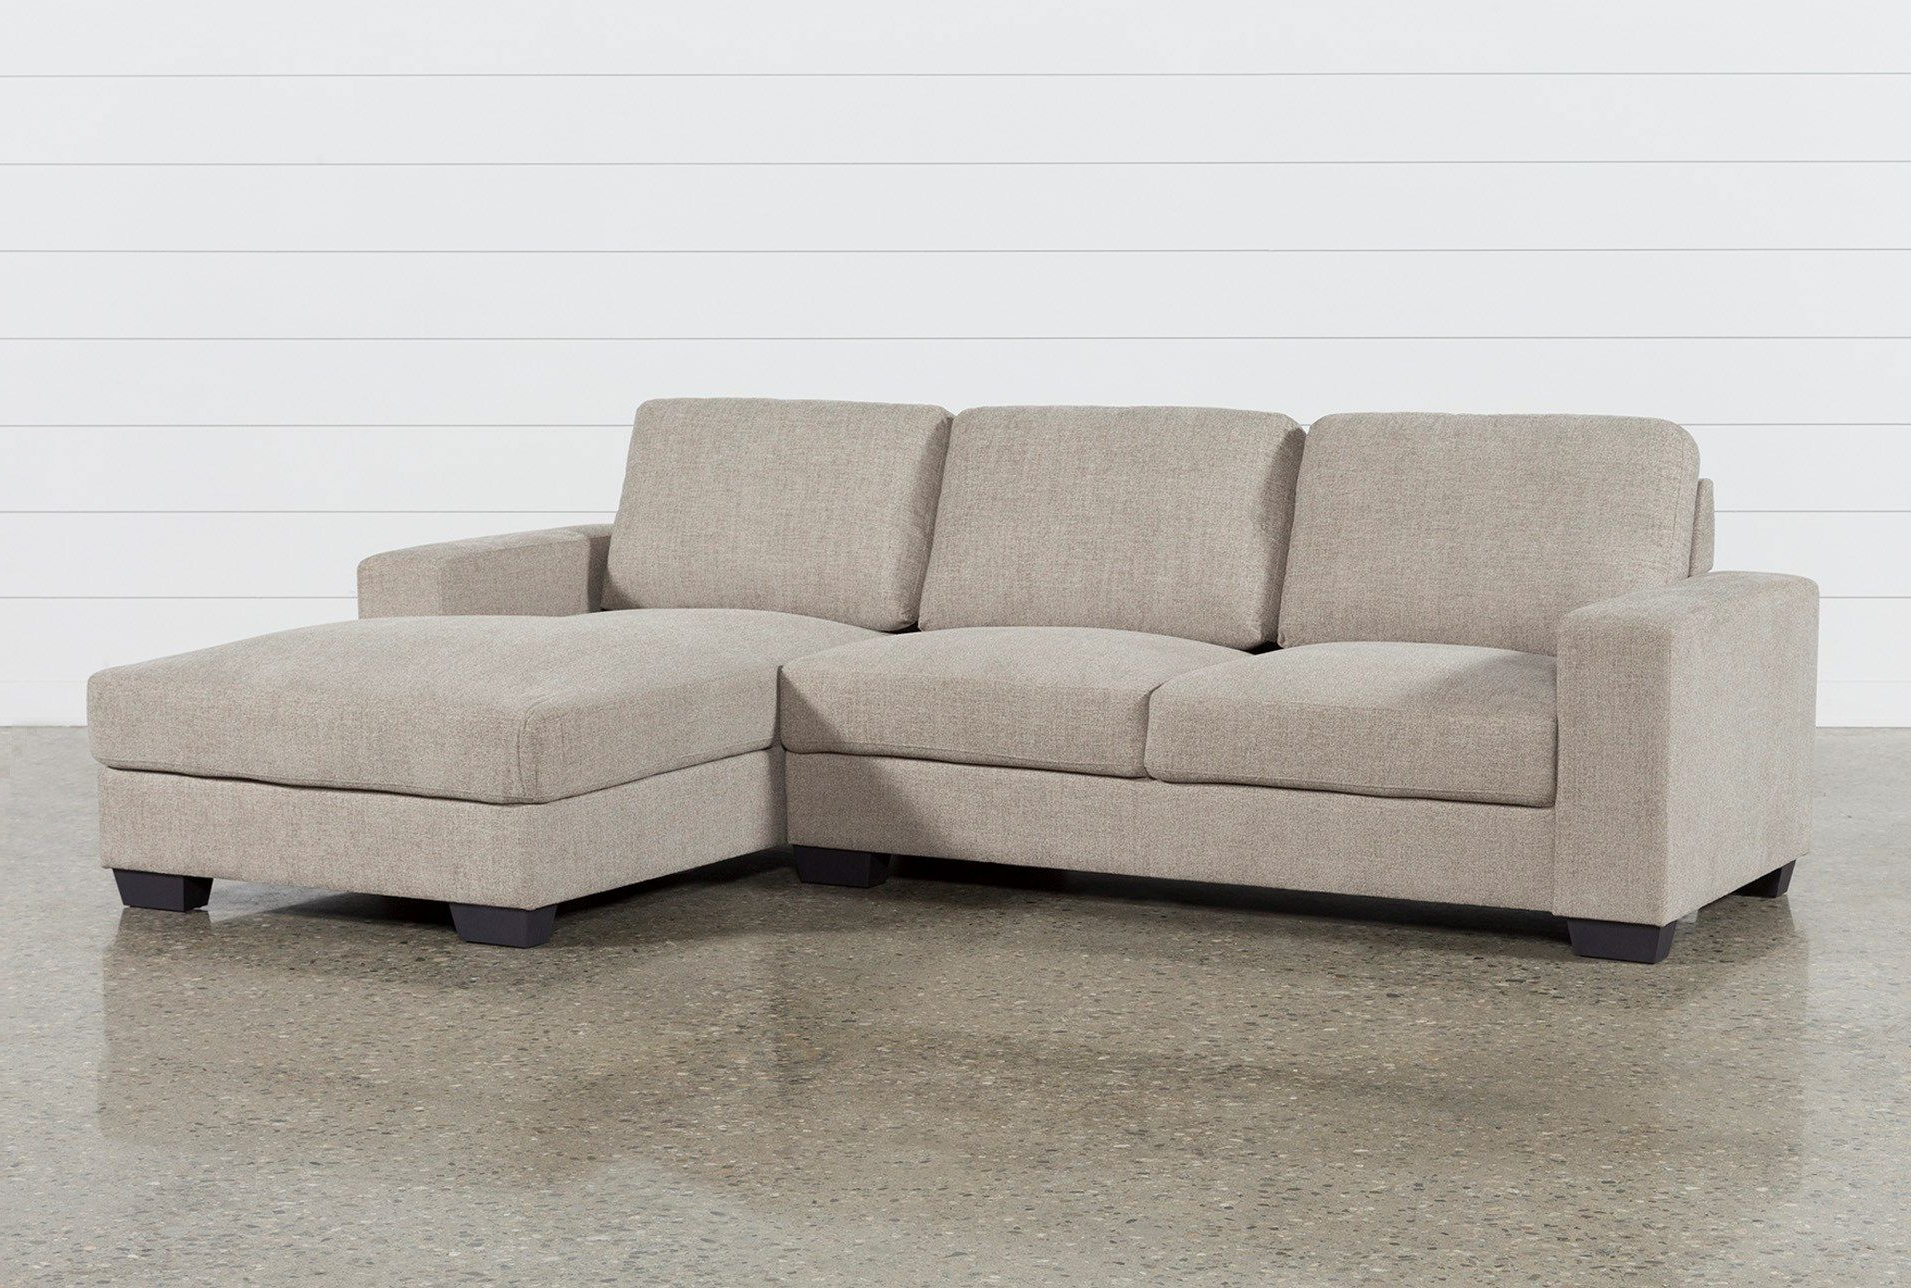 Well Liked Jobs Oat 2 Piece Sectional With Right Facing Chaise In 2018 Inside Arrowmask 2 Piece Sectionals With Sleeper & Left Facing Chaise (View 20 of 20)